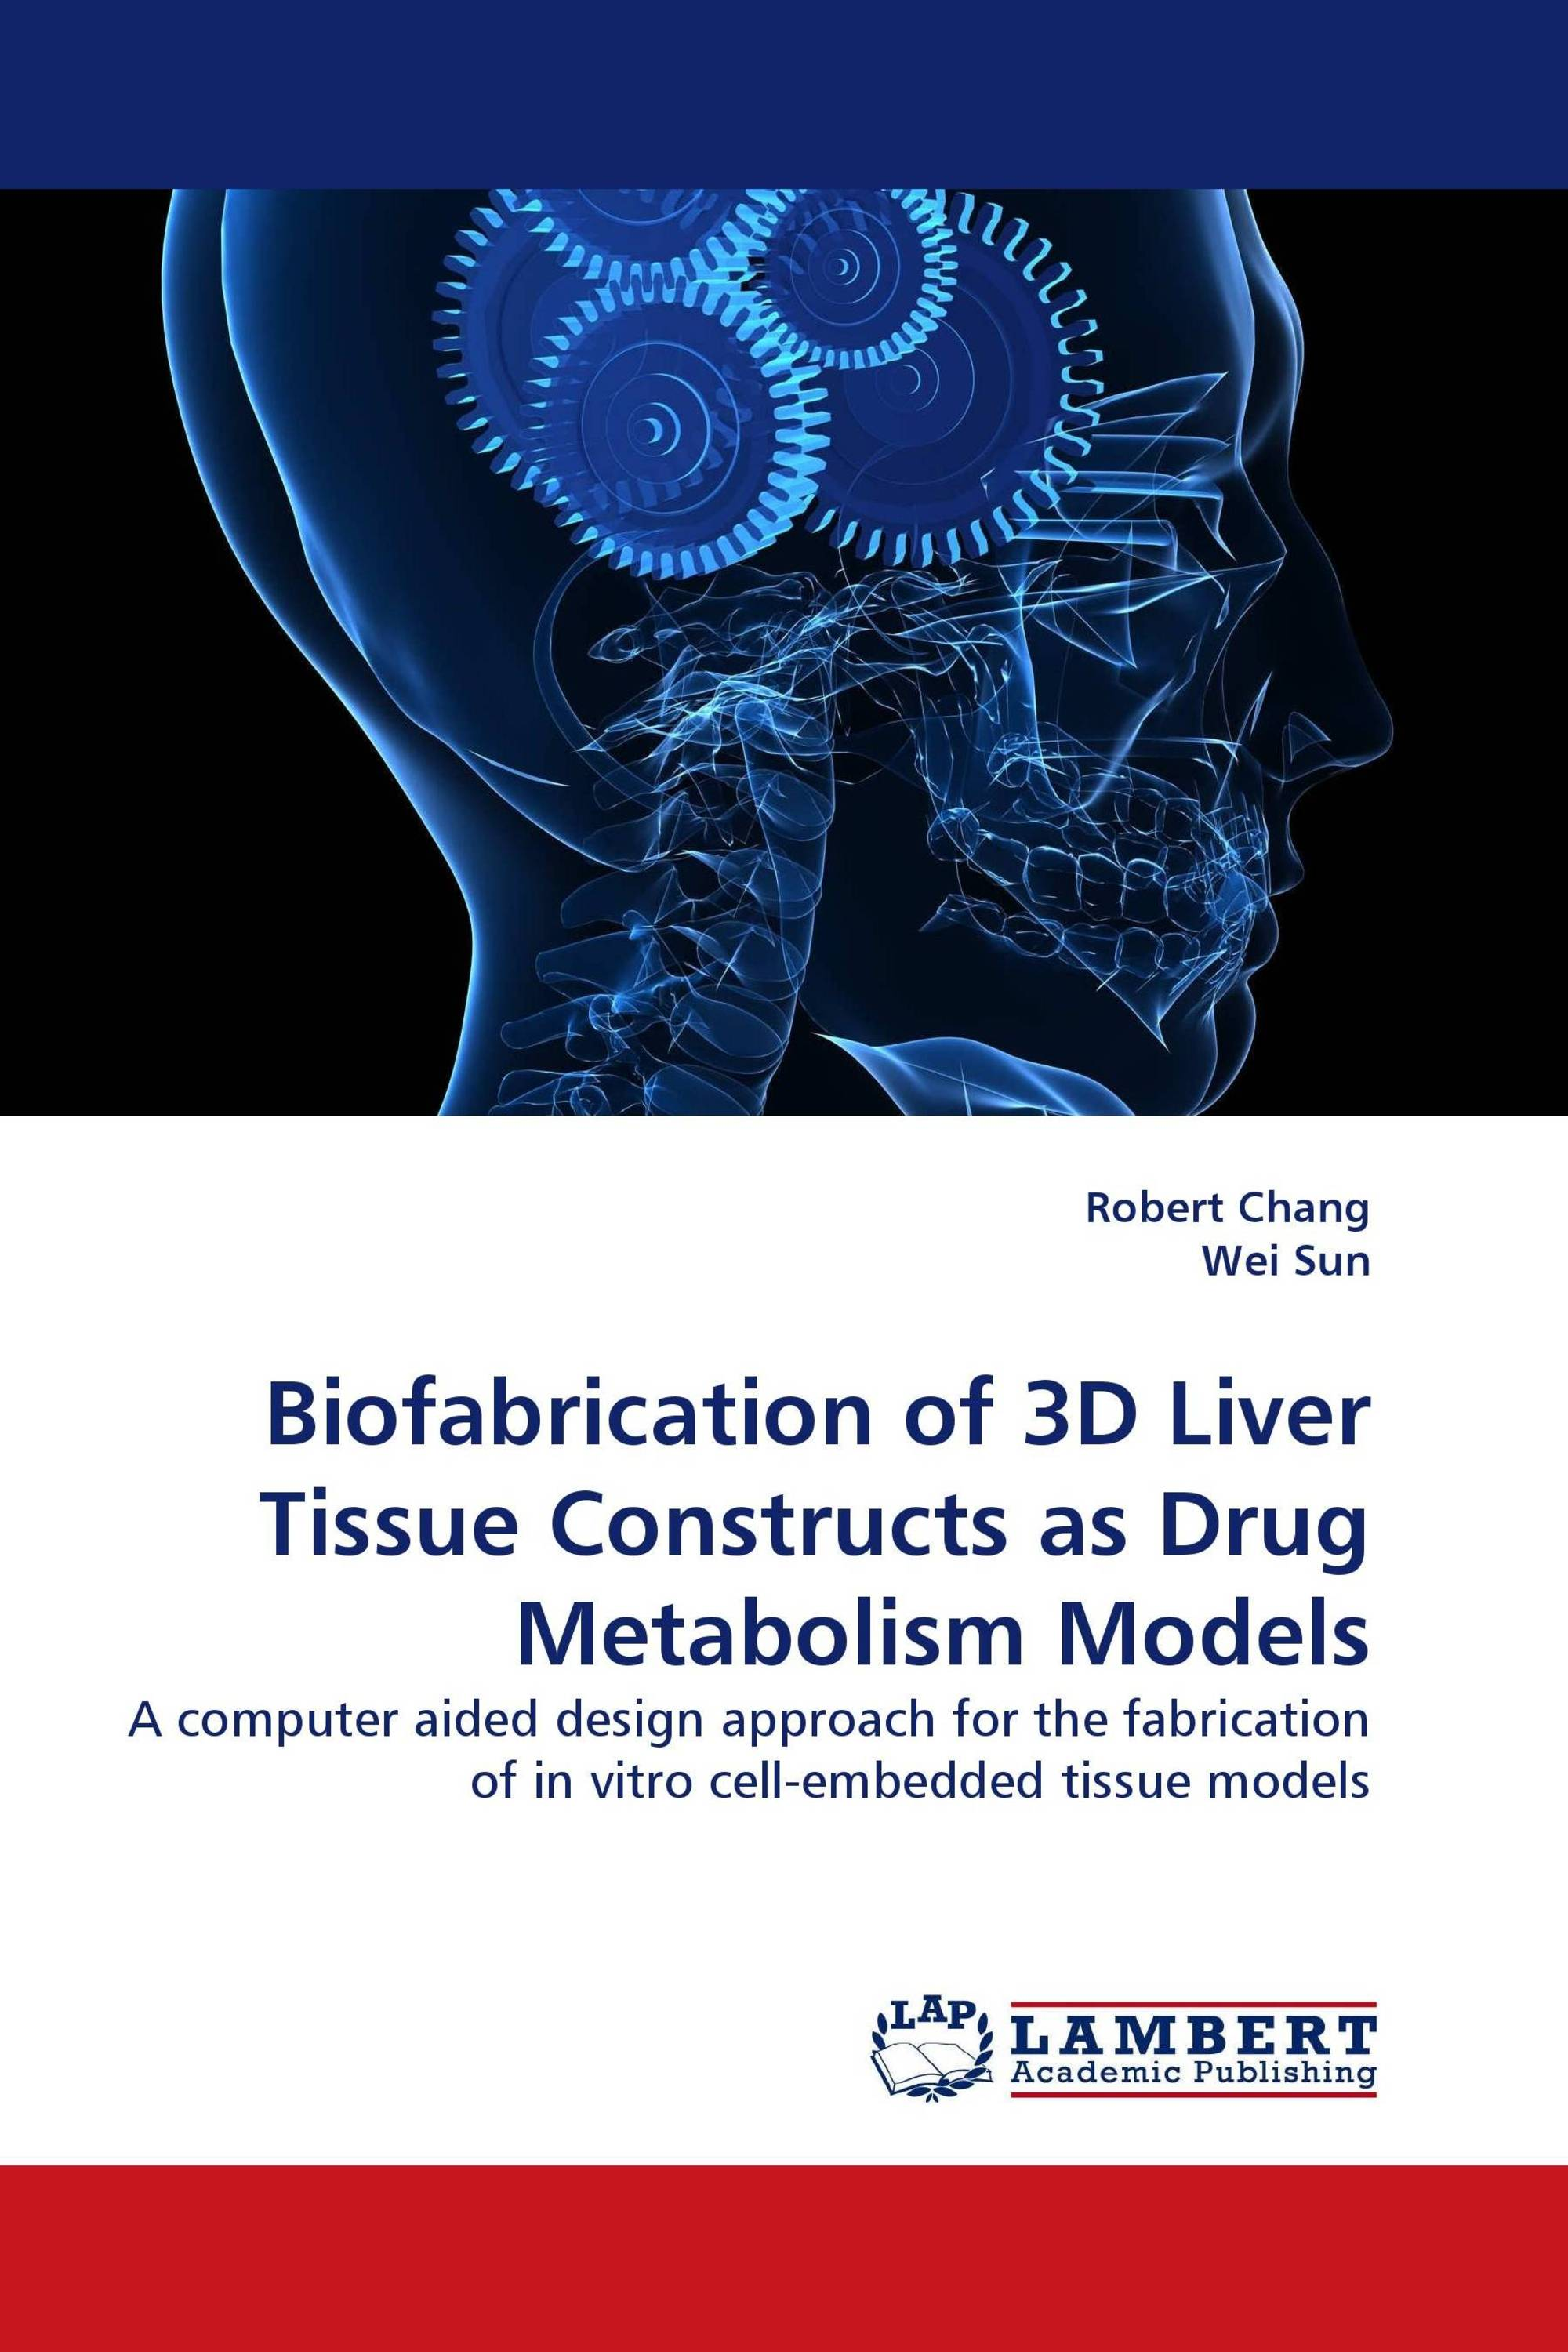 Biofabrication of 3D Liver Tissue Constructs as Drug Metabolism Models